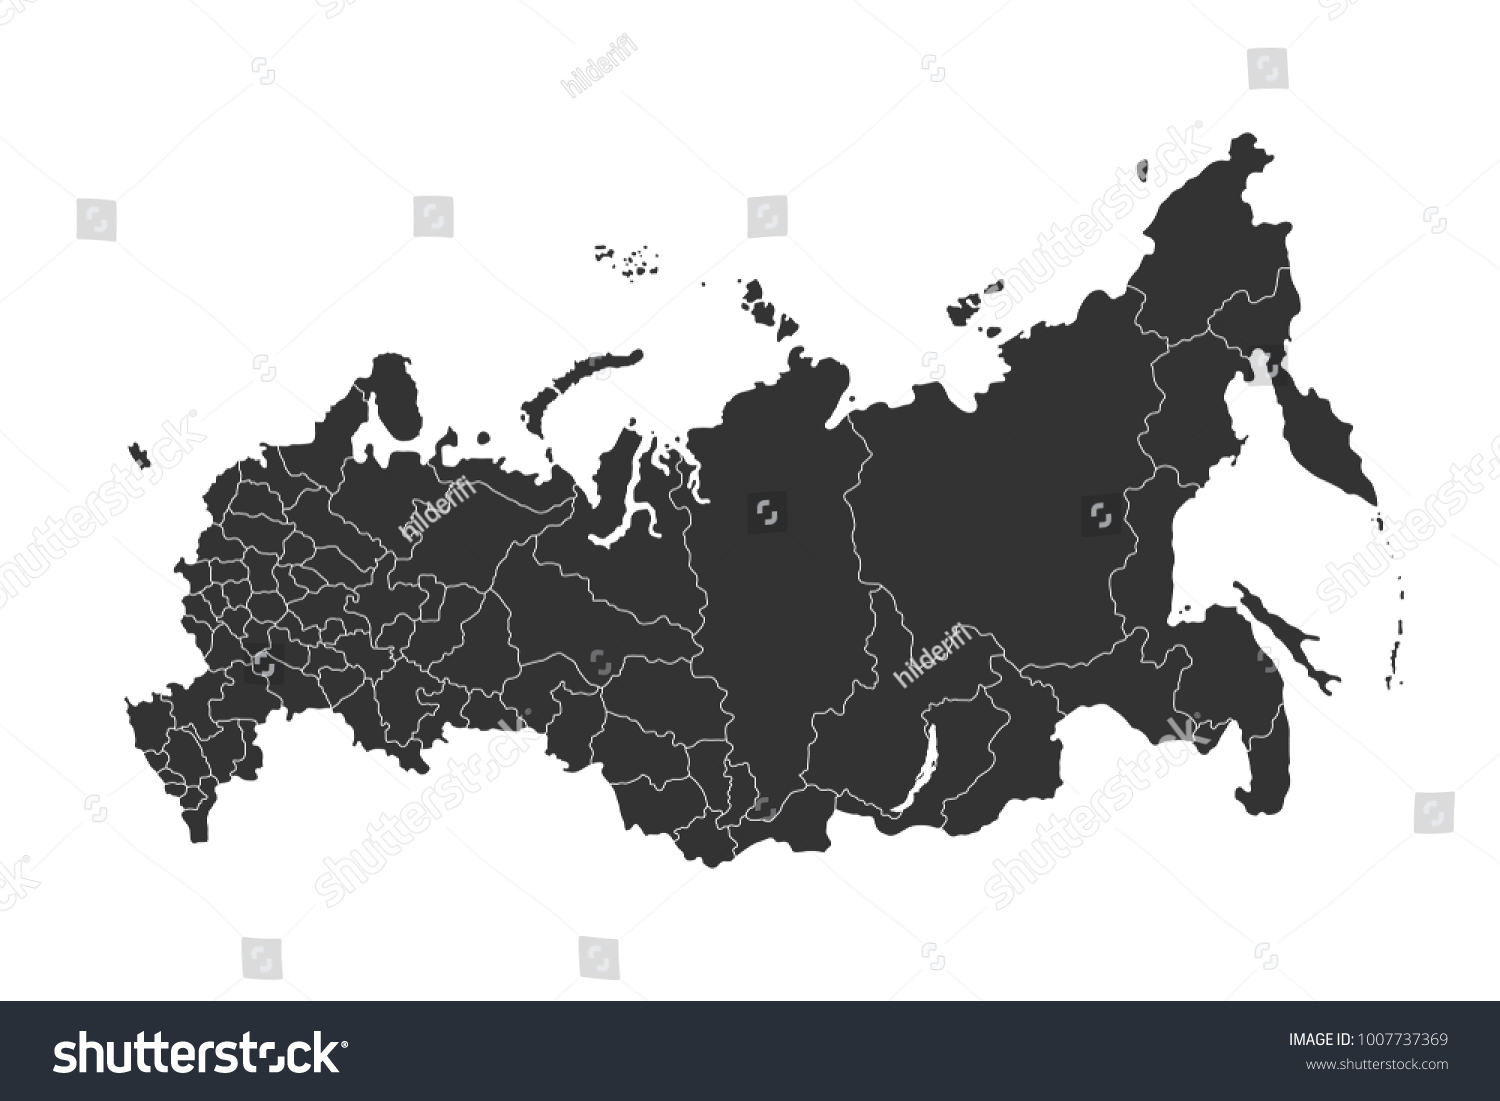 Russia Map Regions Vector Flat Illustration Stock Vector ... on flat united states map, flat eurasia map, flat great britain map, flat country map, flat europe map, flat us map, flat africa map, flat world maps,